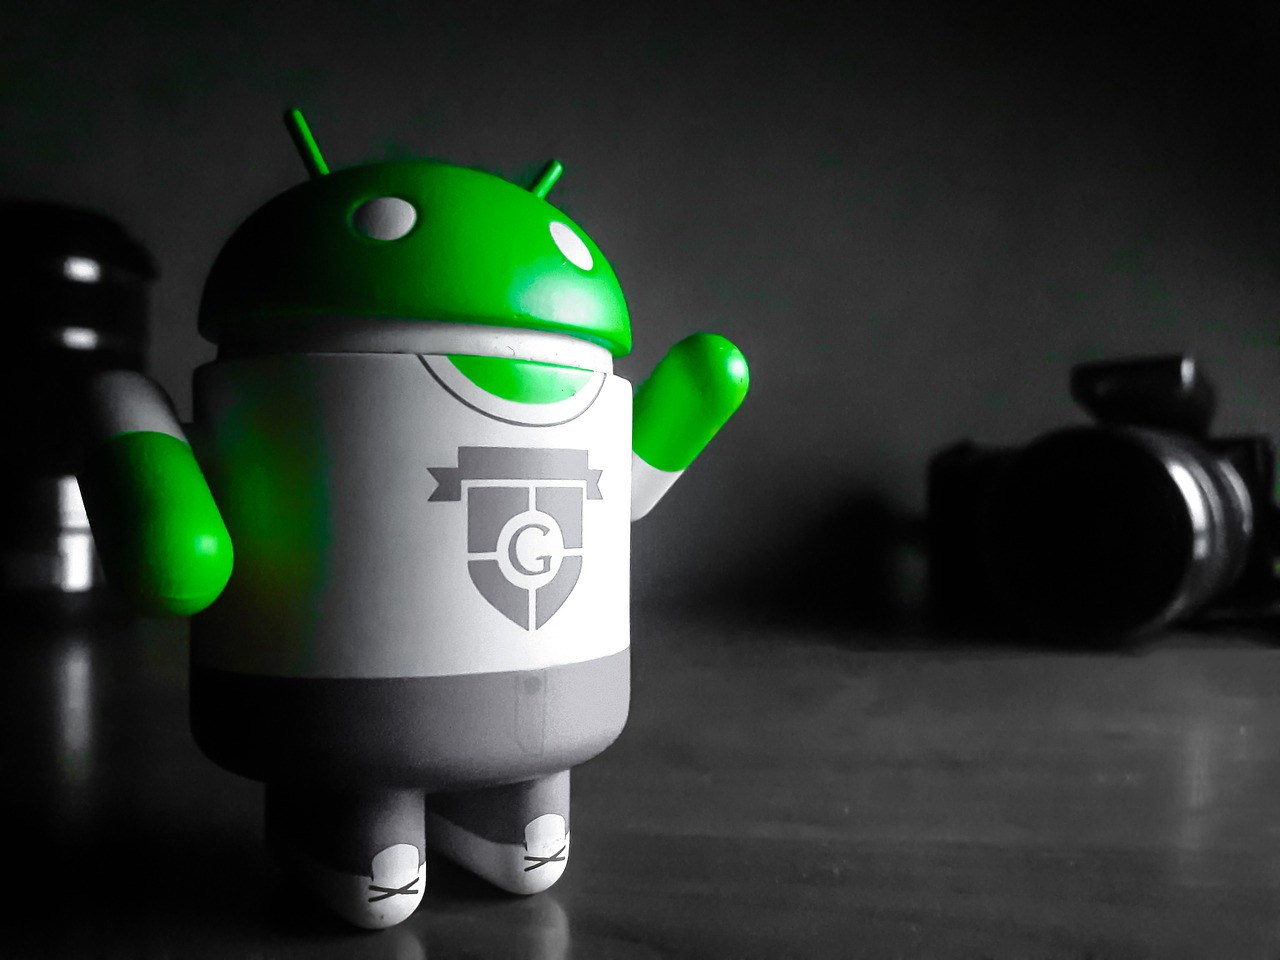 Android Partners Now Have To Pay Up To 40 Per Device For Apps Source Digital Information World